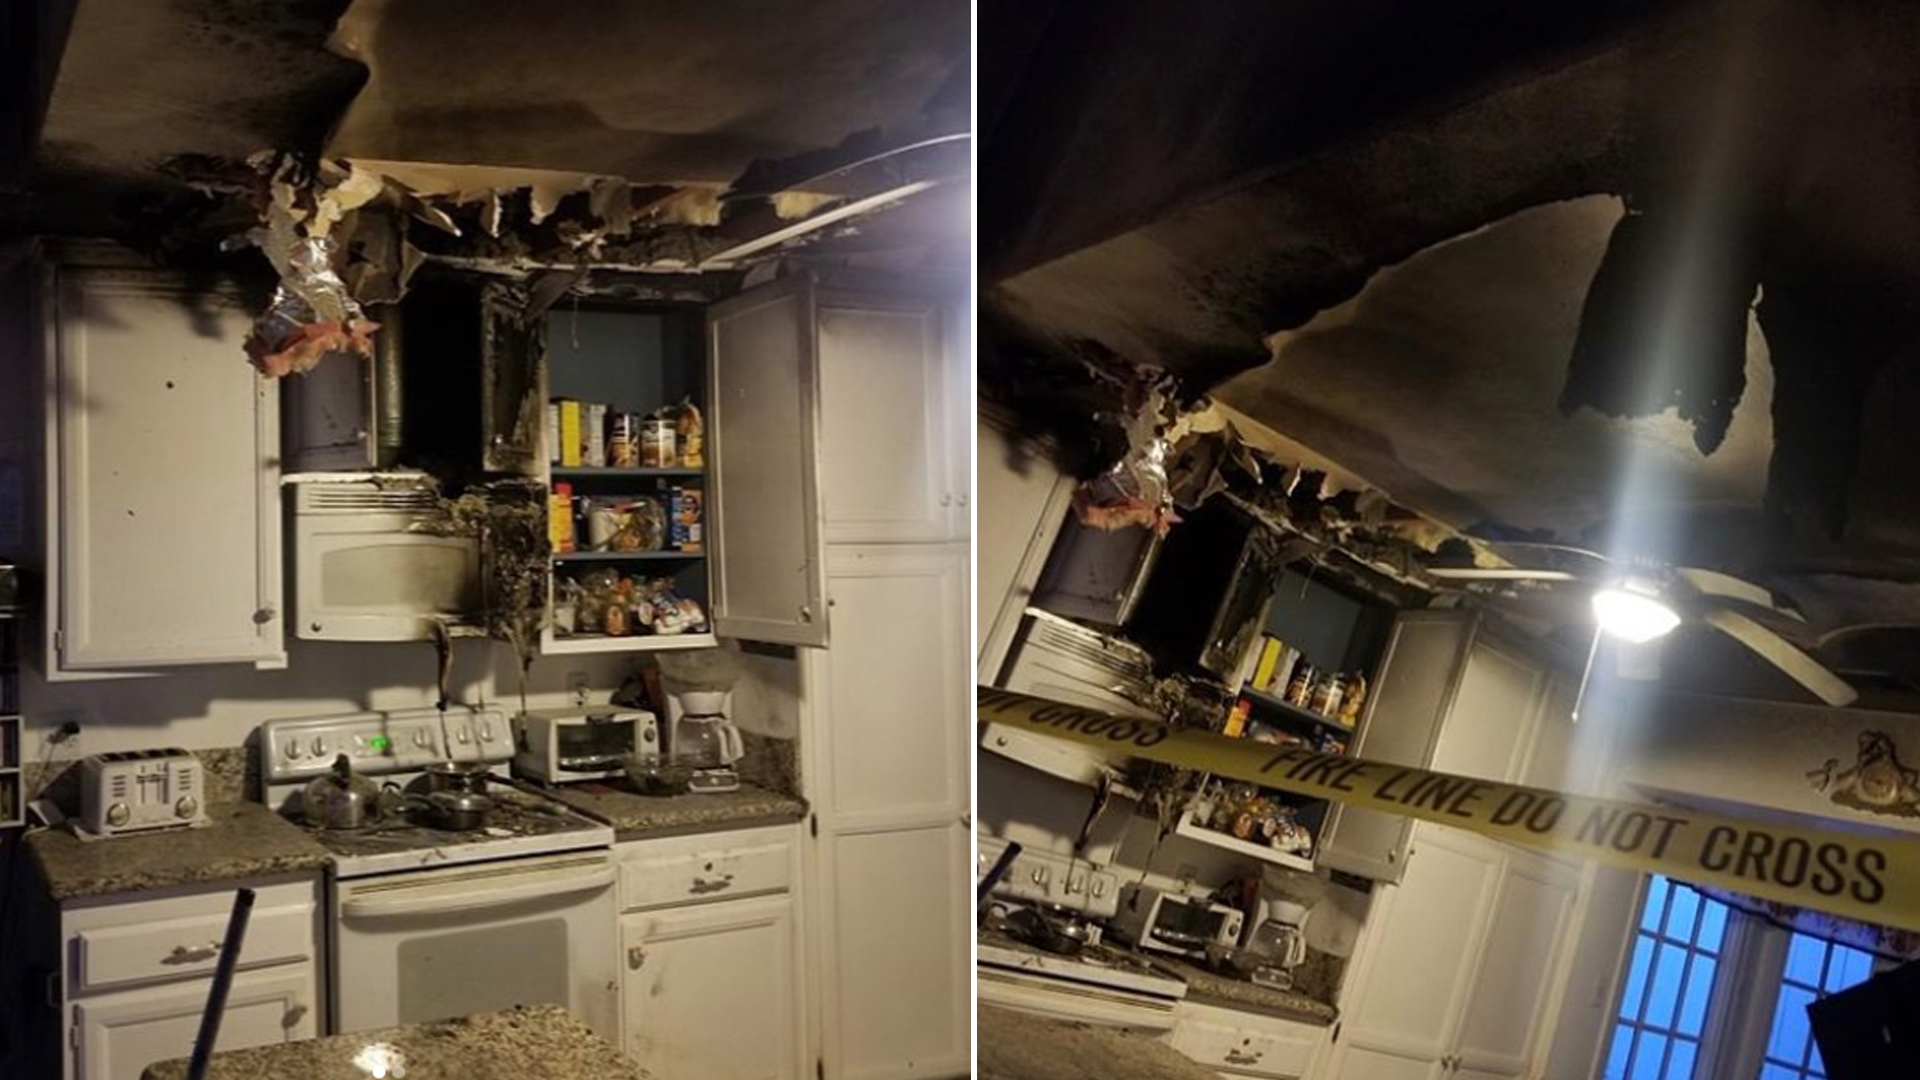 The aftermath of a fire at a Mission Viejo home on Nov. 30, 2019. (Credit: Orange County Sheriff's Office/ Instagram)